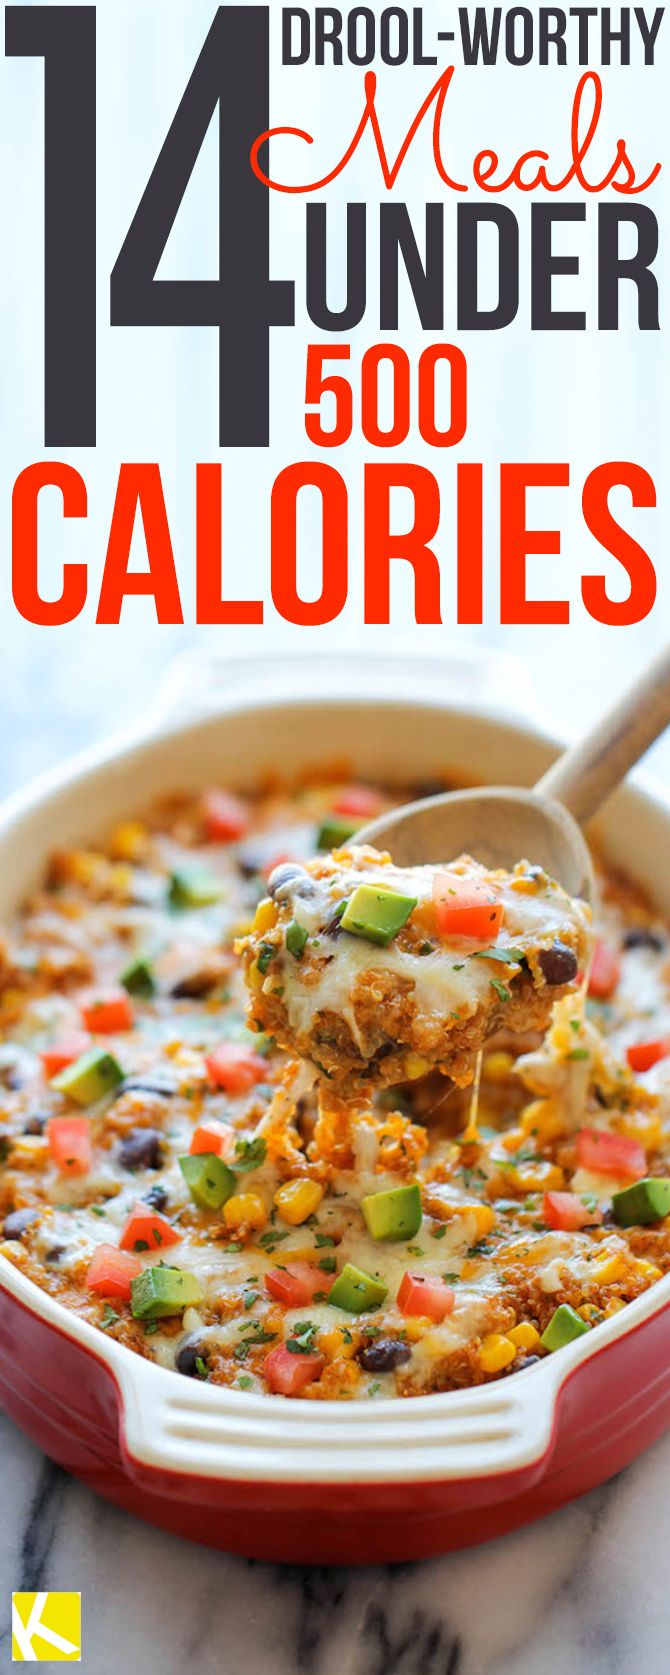 14 Drool-Worthy Meals Under 500 Calories                                                                                                                                                     More